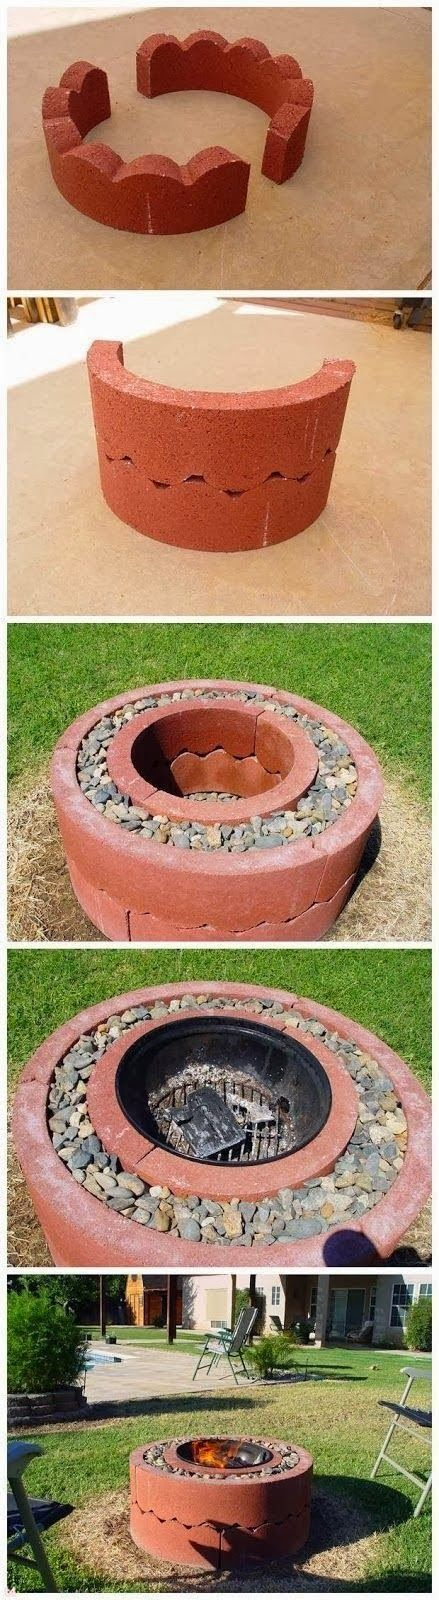 $50 Fire Pit Using Concrete Tree Rings - Detailed Step-by-Step Instructions